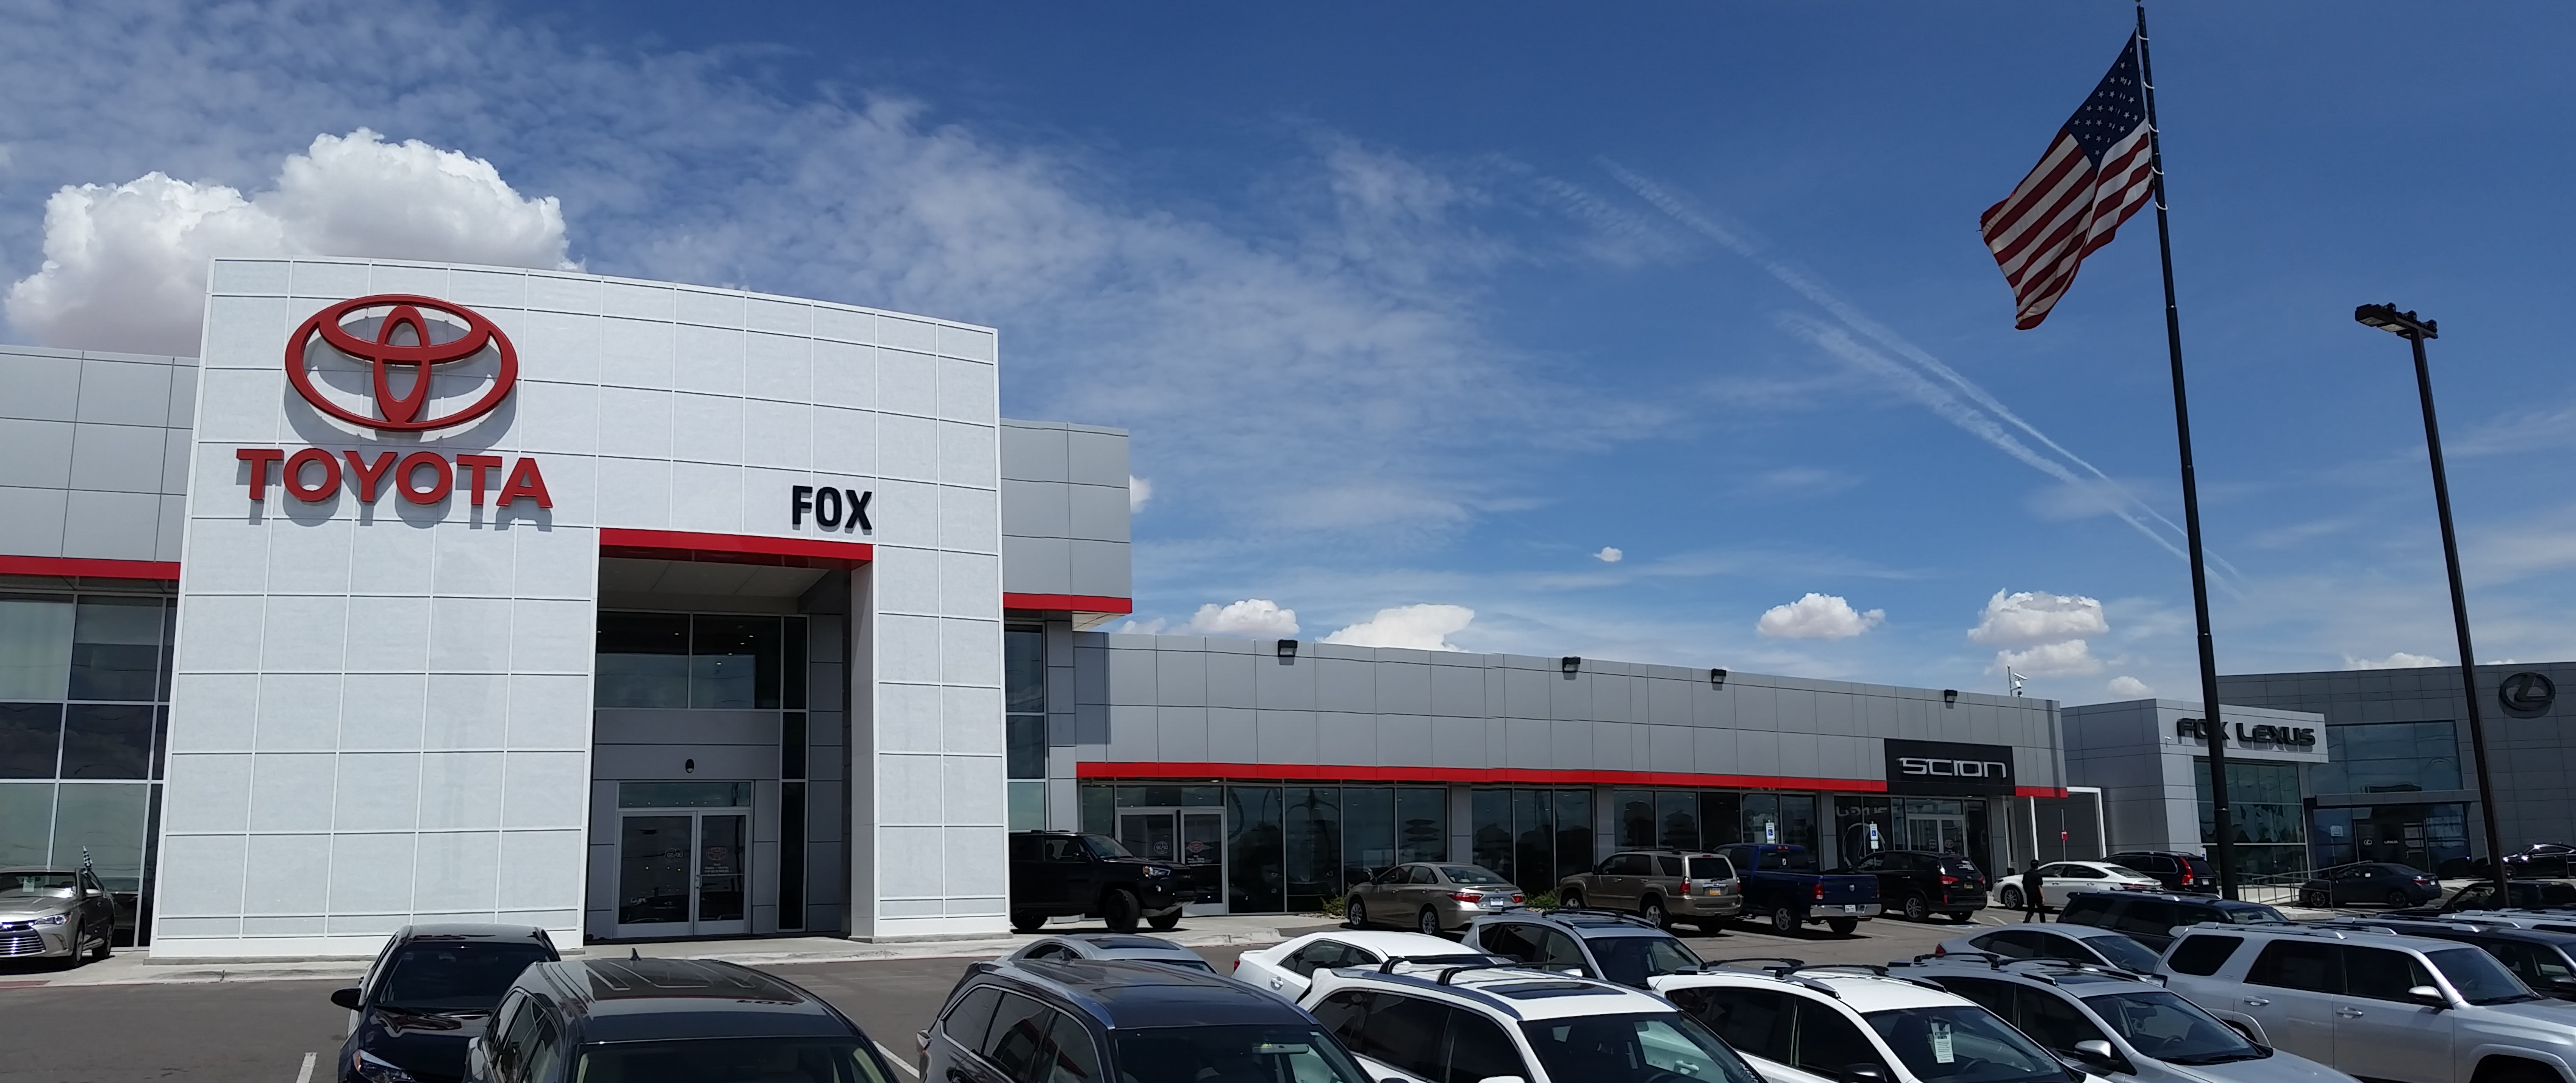 Fox toyota of el paso el paso texas tx for Indianapolis motors el paso tx